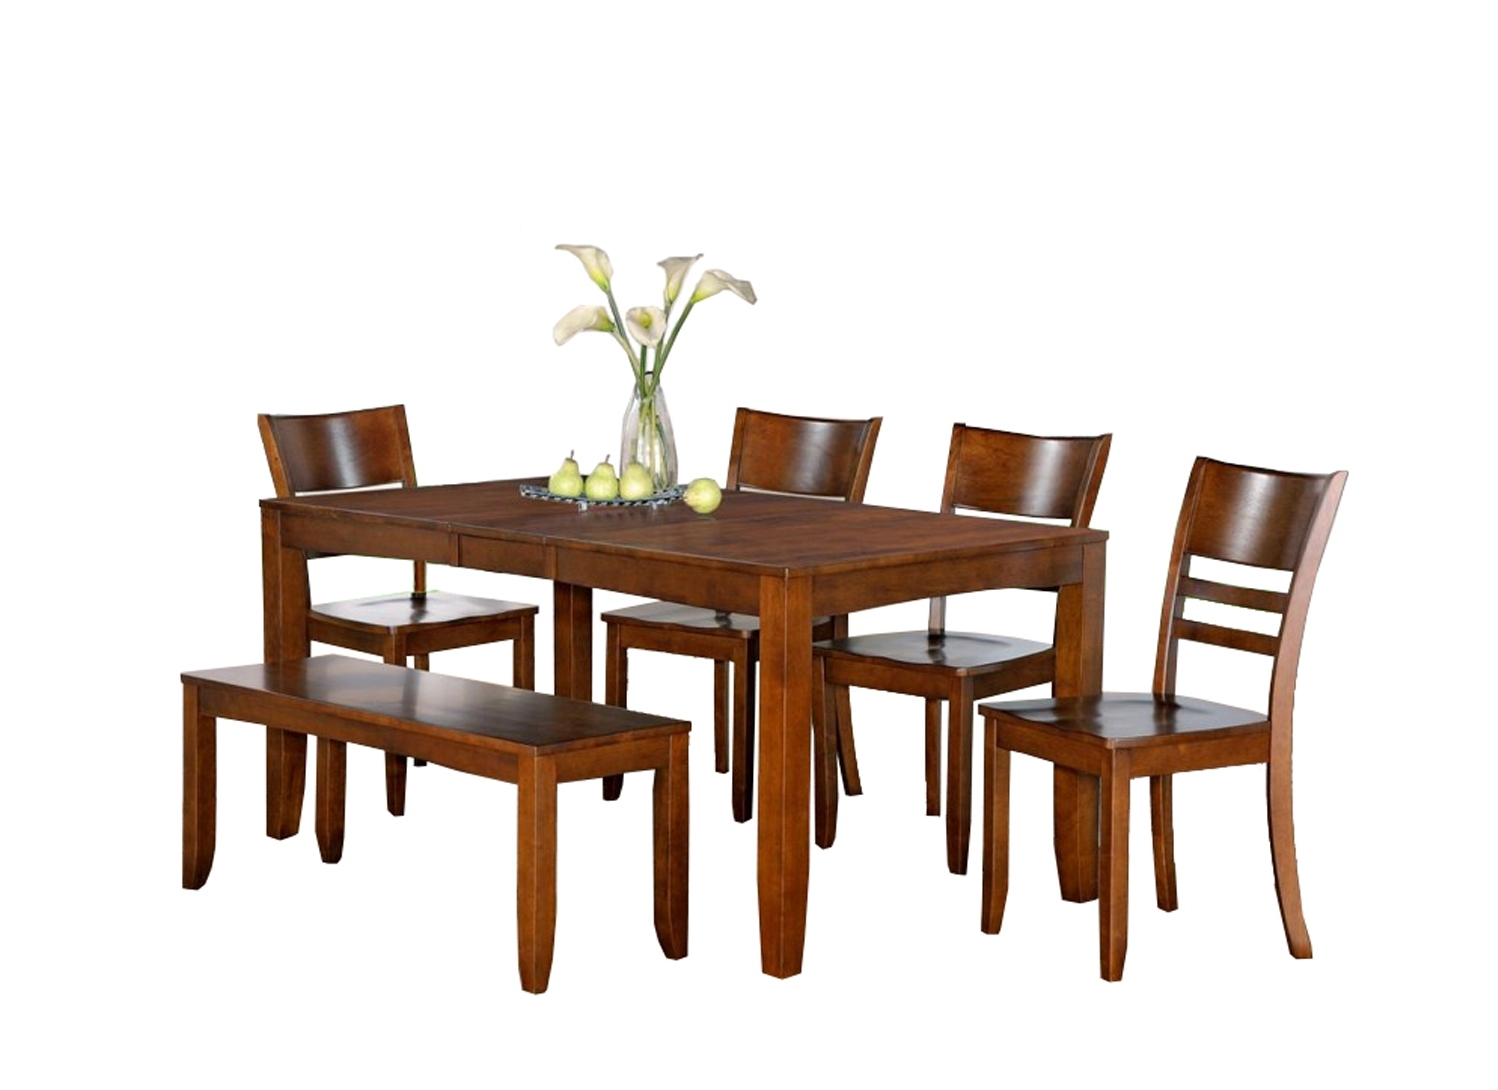 Indian Dining Tables And Chairs Intended For Most Recently Released Dining Table Manufacturers In Bangalore, Dining Table Manufacturers (View 21 of 25)